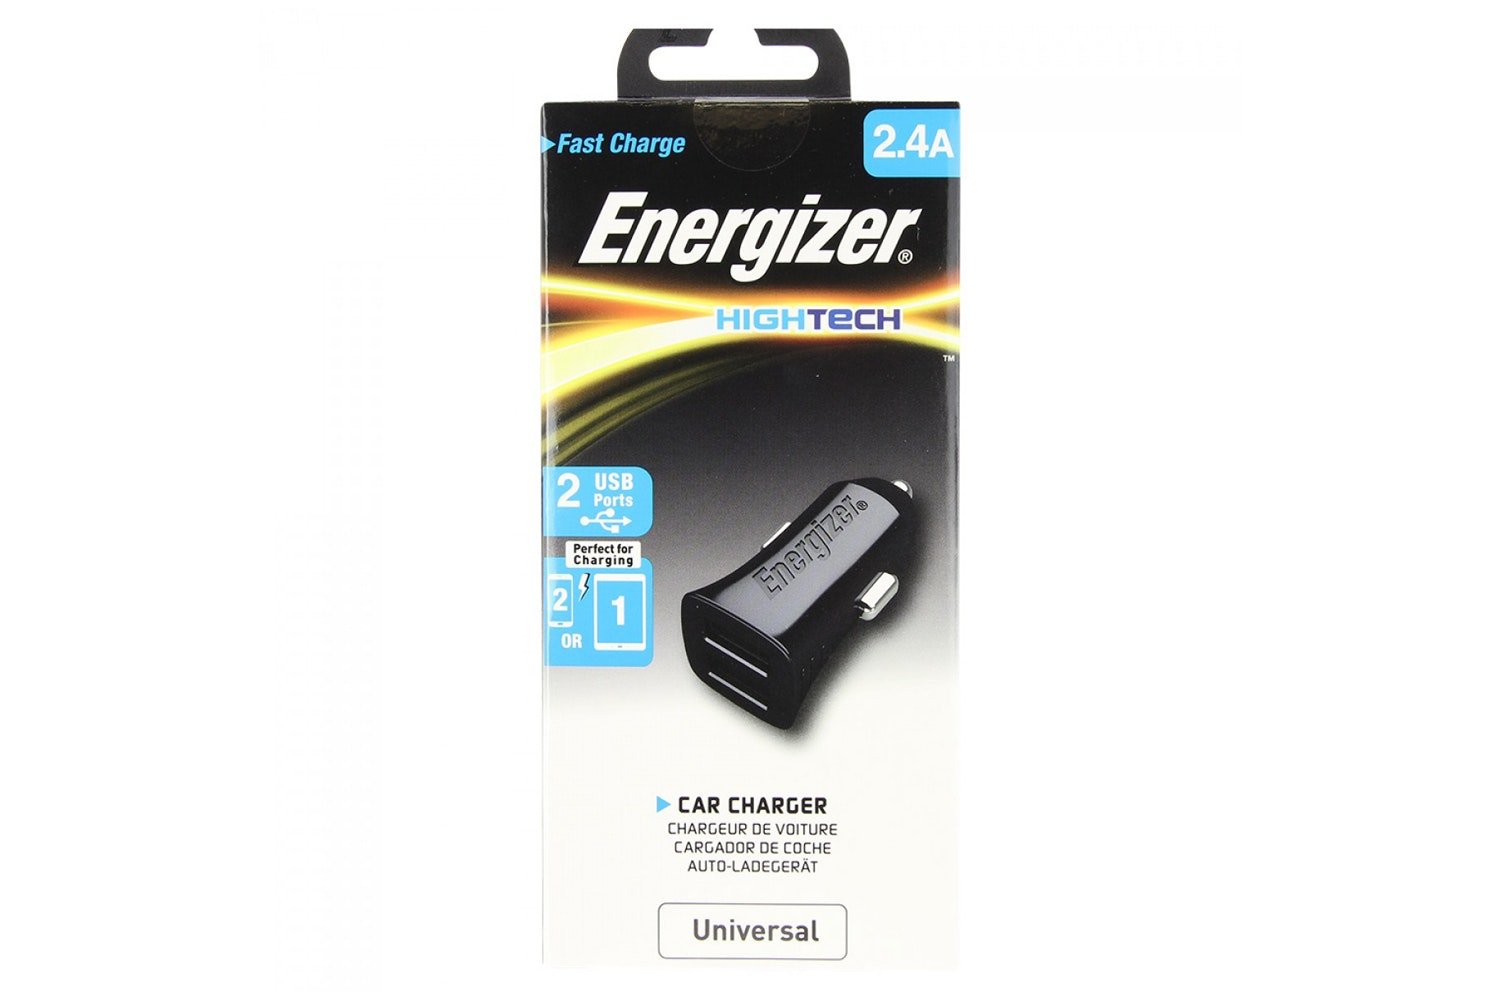 Energizer 2.4A Dual USB Car Charger | Black